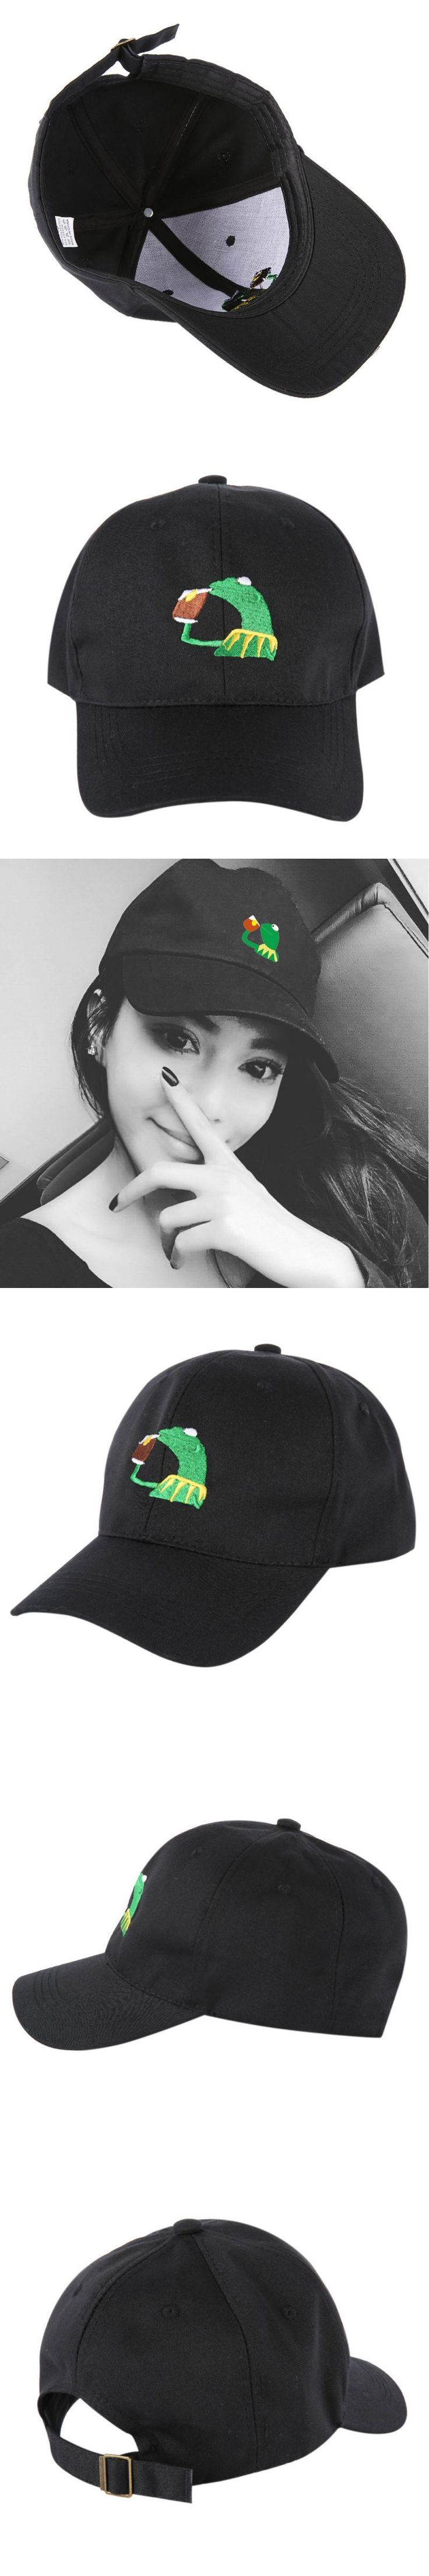 2017 The Frog Sipping Tea Hat Drake Embroidery Cap  New Classic Dad Hat Popular Baseball cap